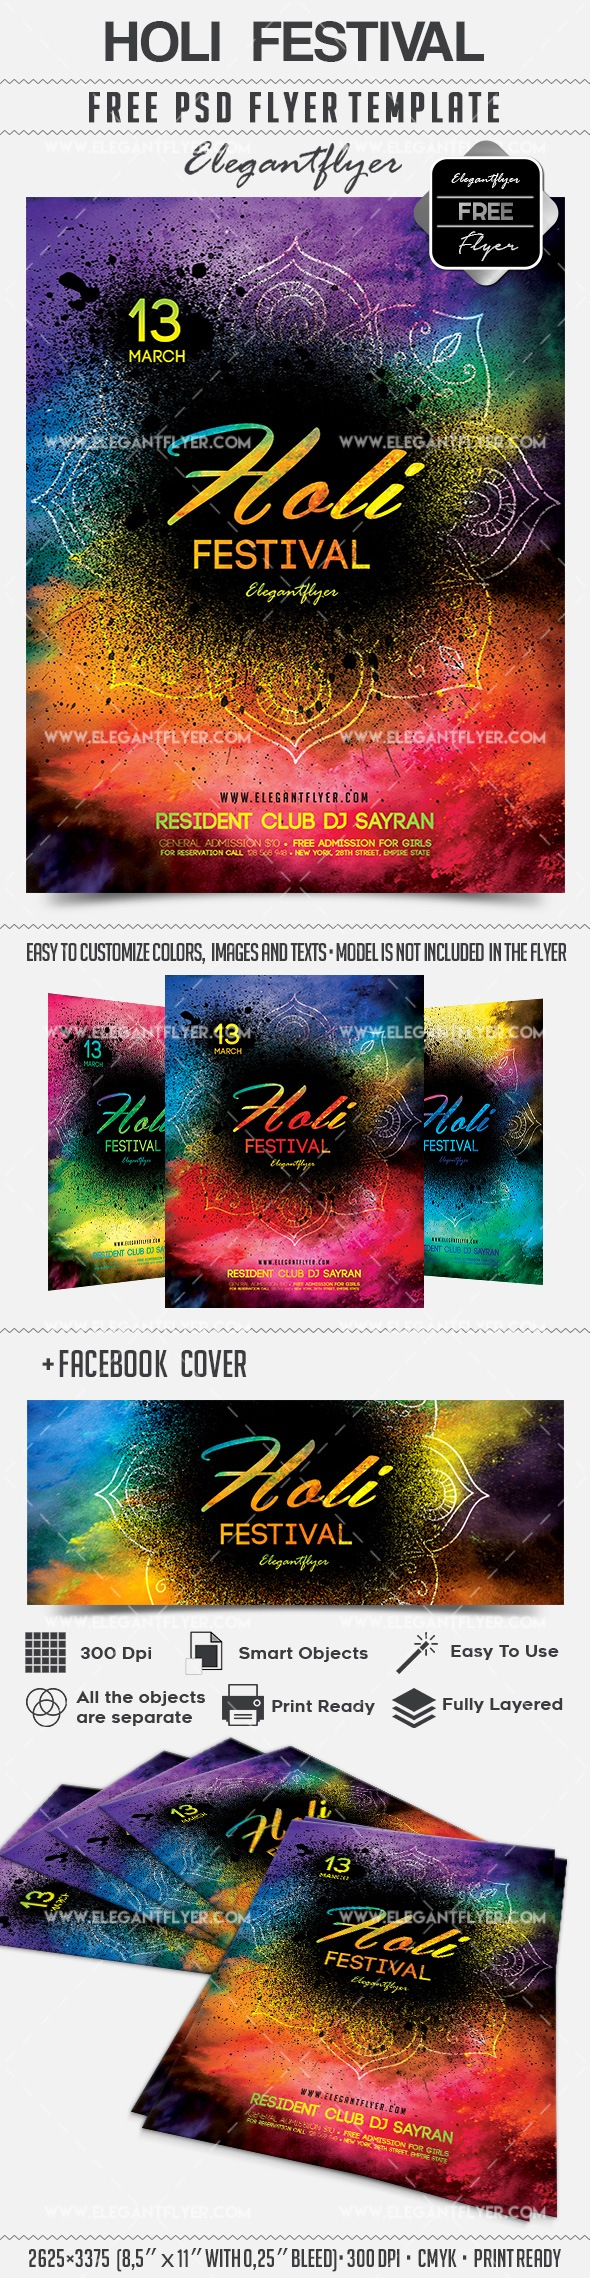 Holi Festival – Free Flyer PSD Template + Facebook Cover